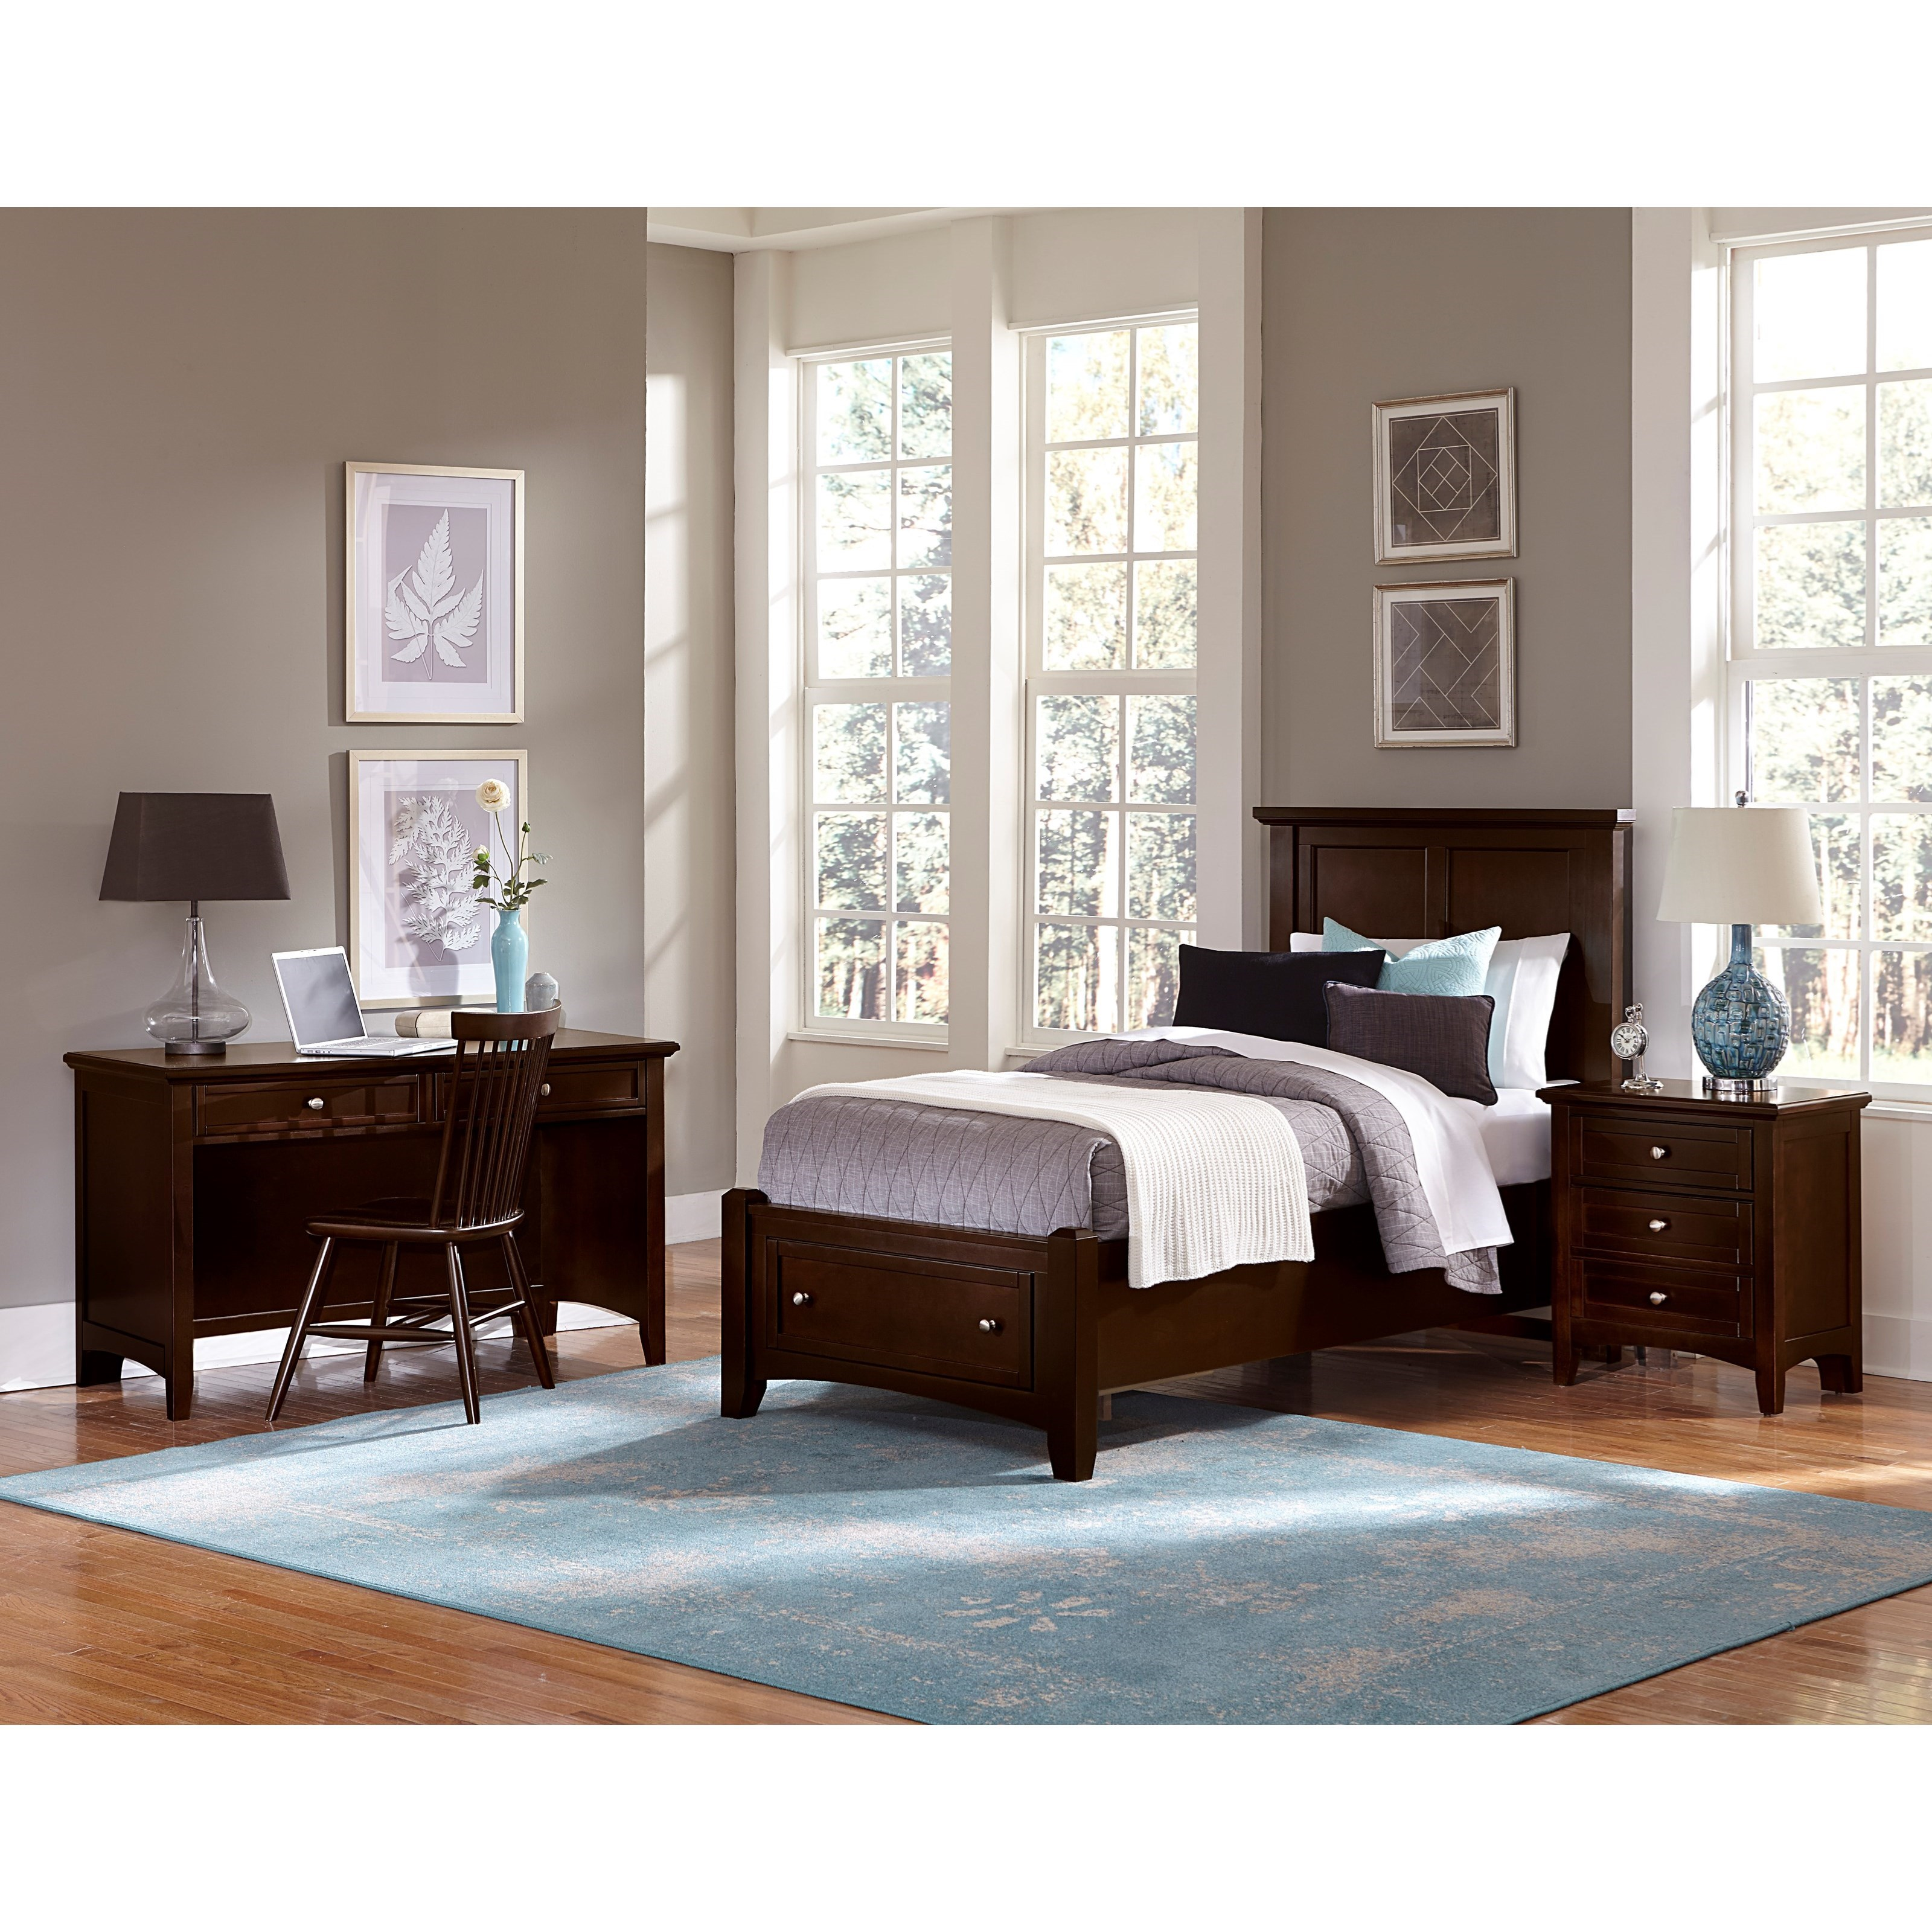 Vaughan bassett bonanza twin bedroom group dunk bright for Bedroom furniture groups